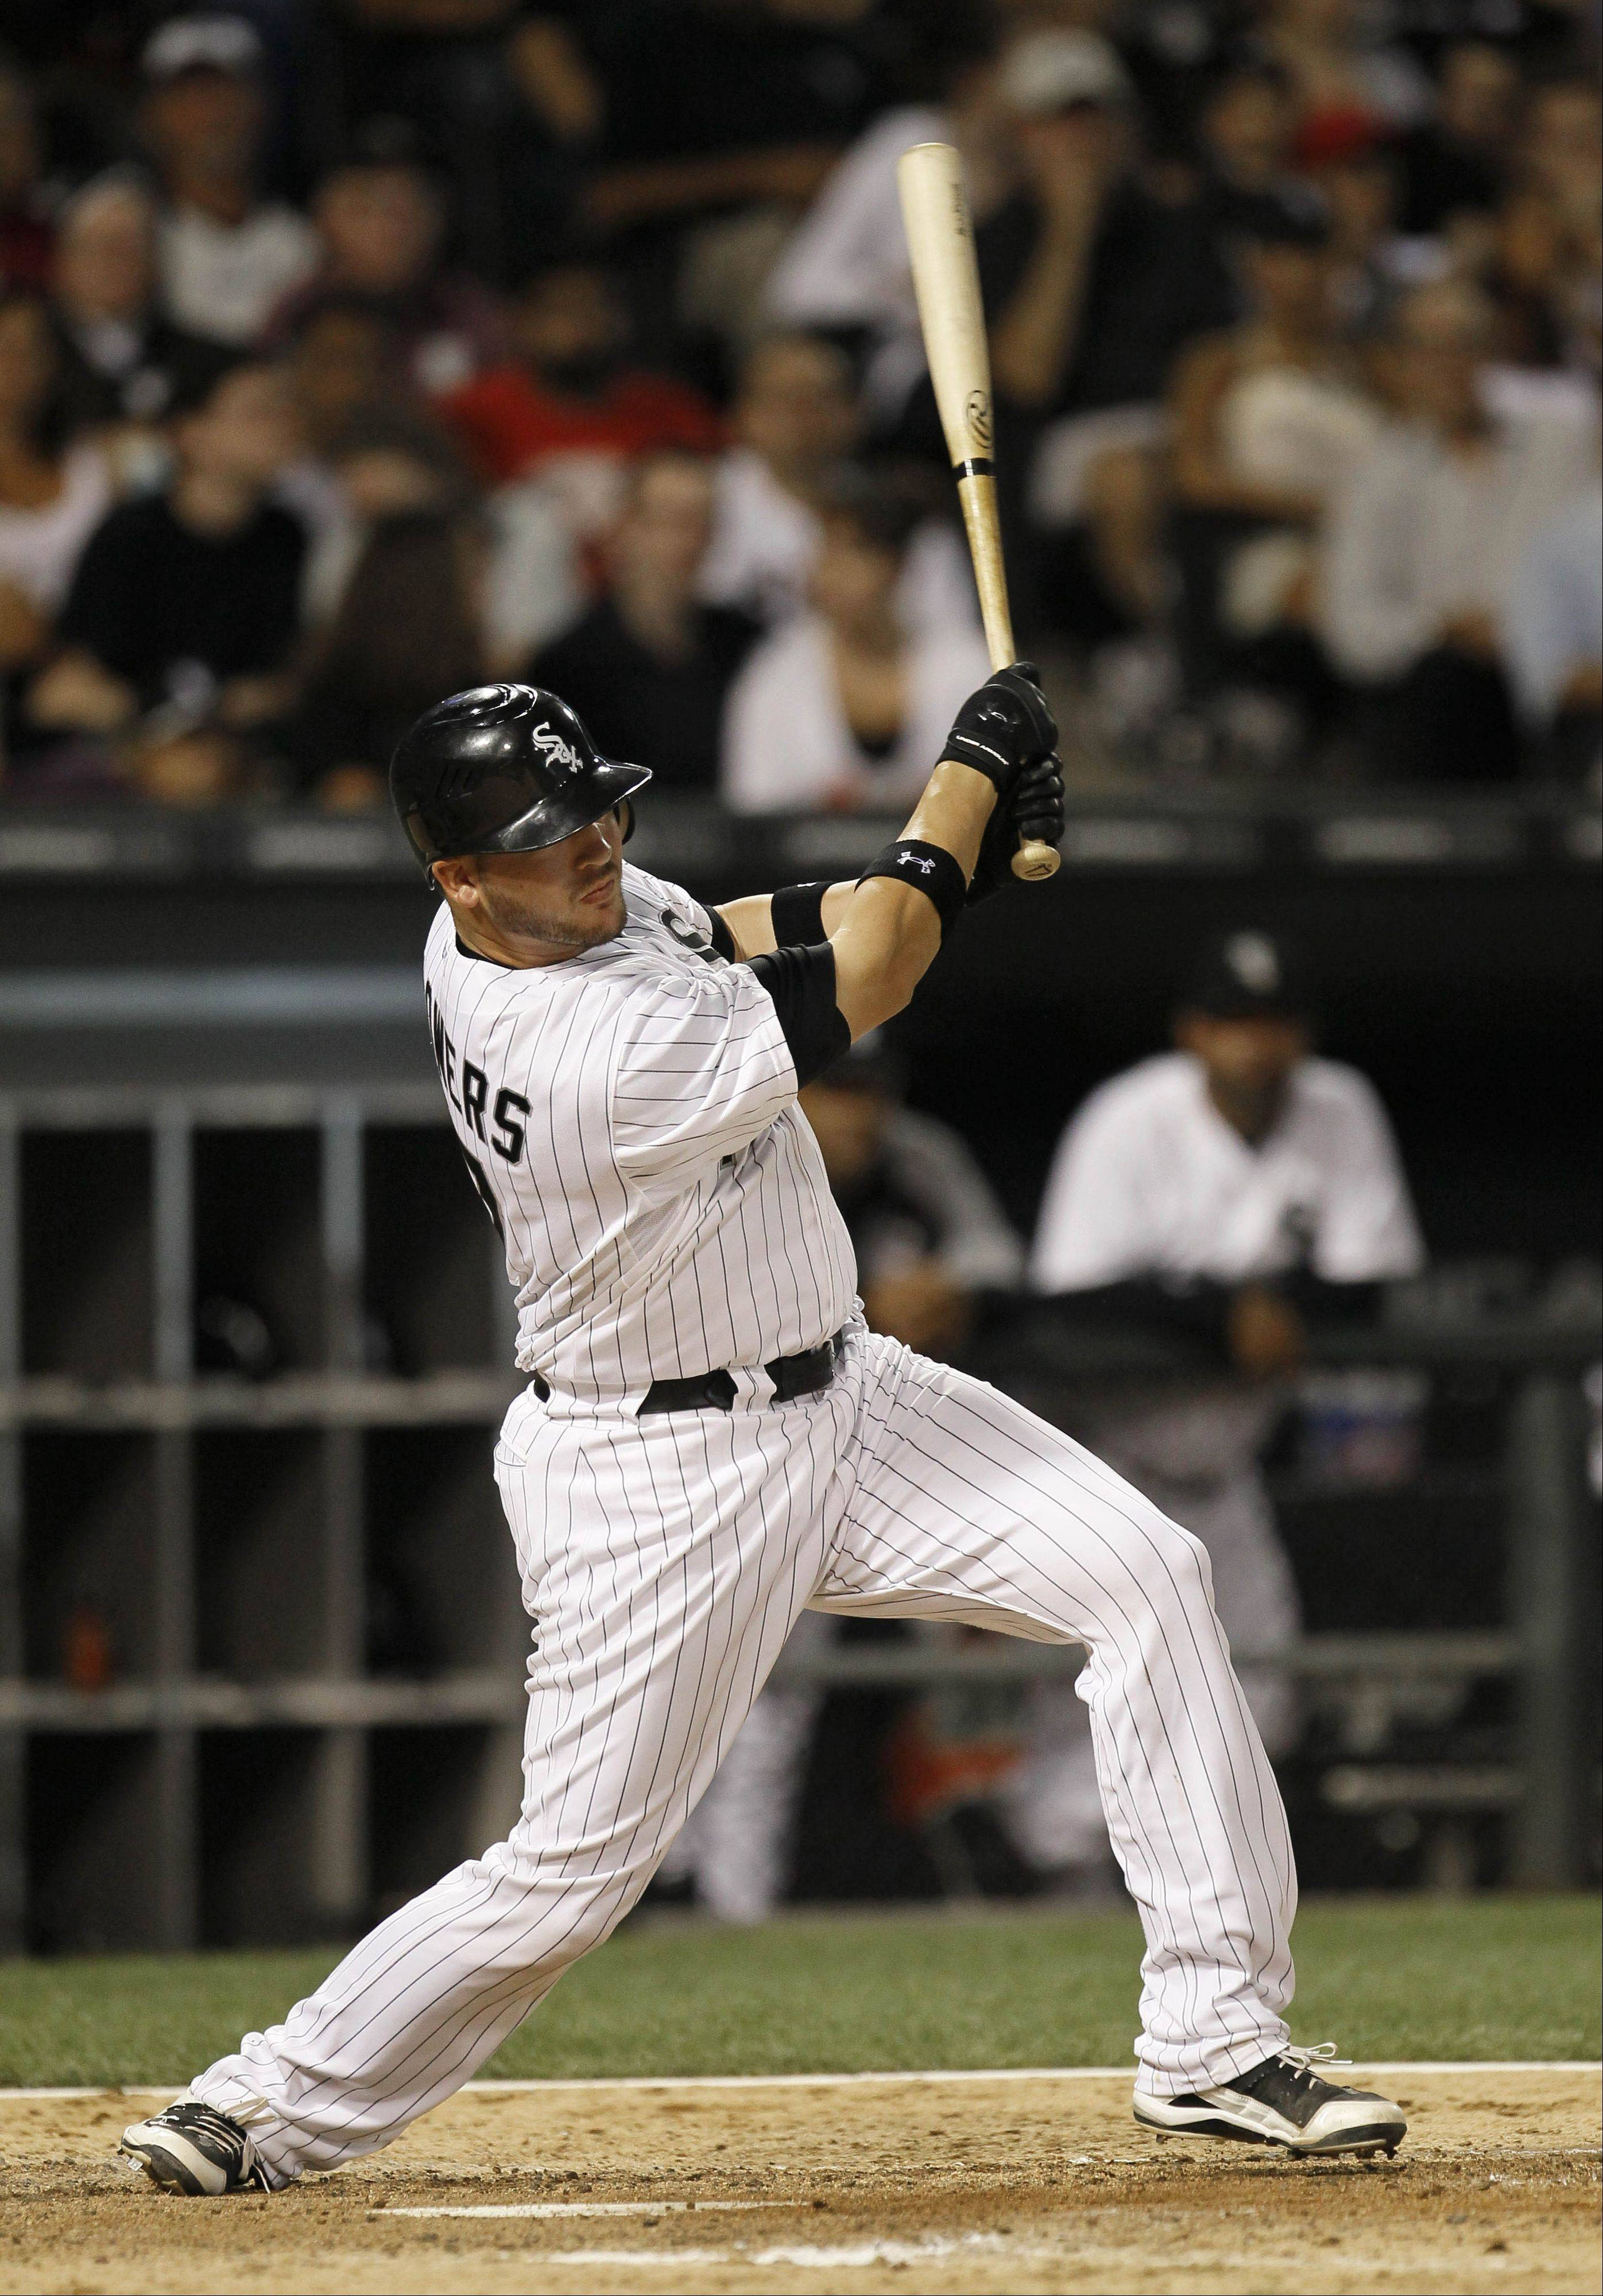 In the seven games he has started since catcher A.J. Pierzynski went on the disabled list, Tyler Flowers is batting .400 (10-25) for the White Sox.